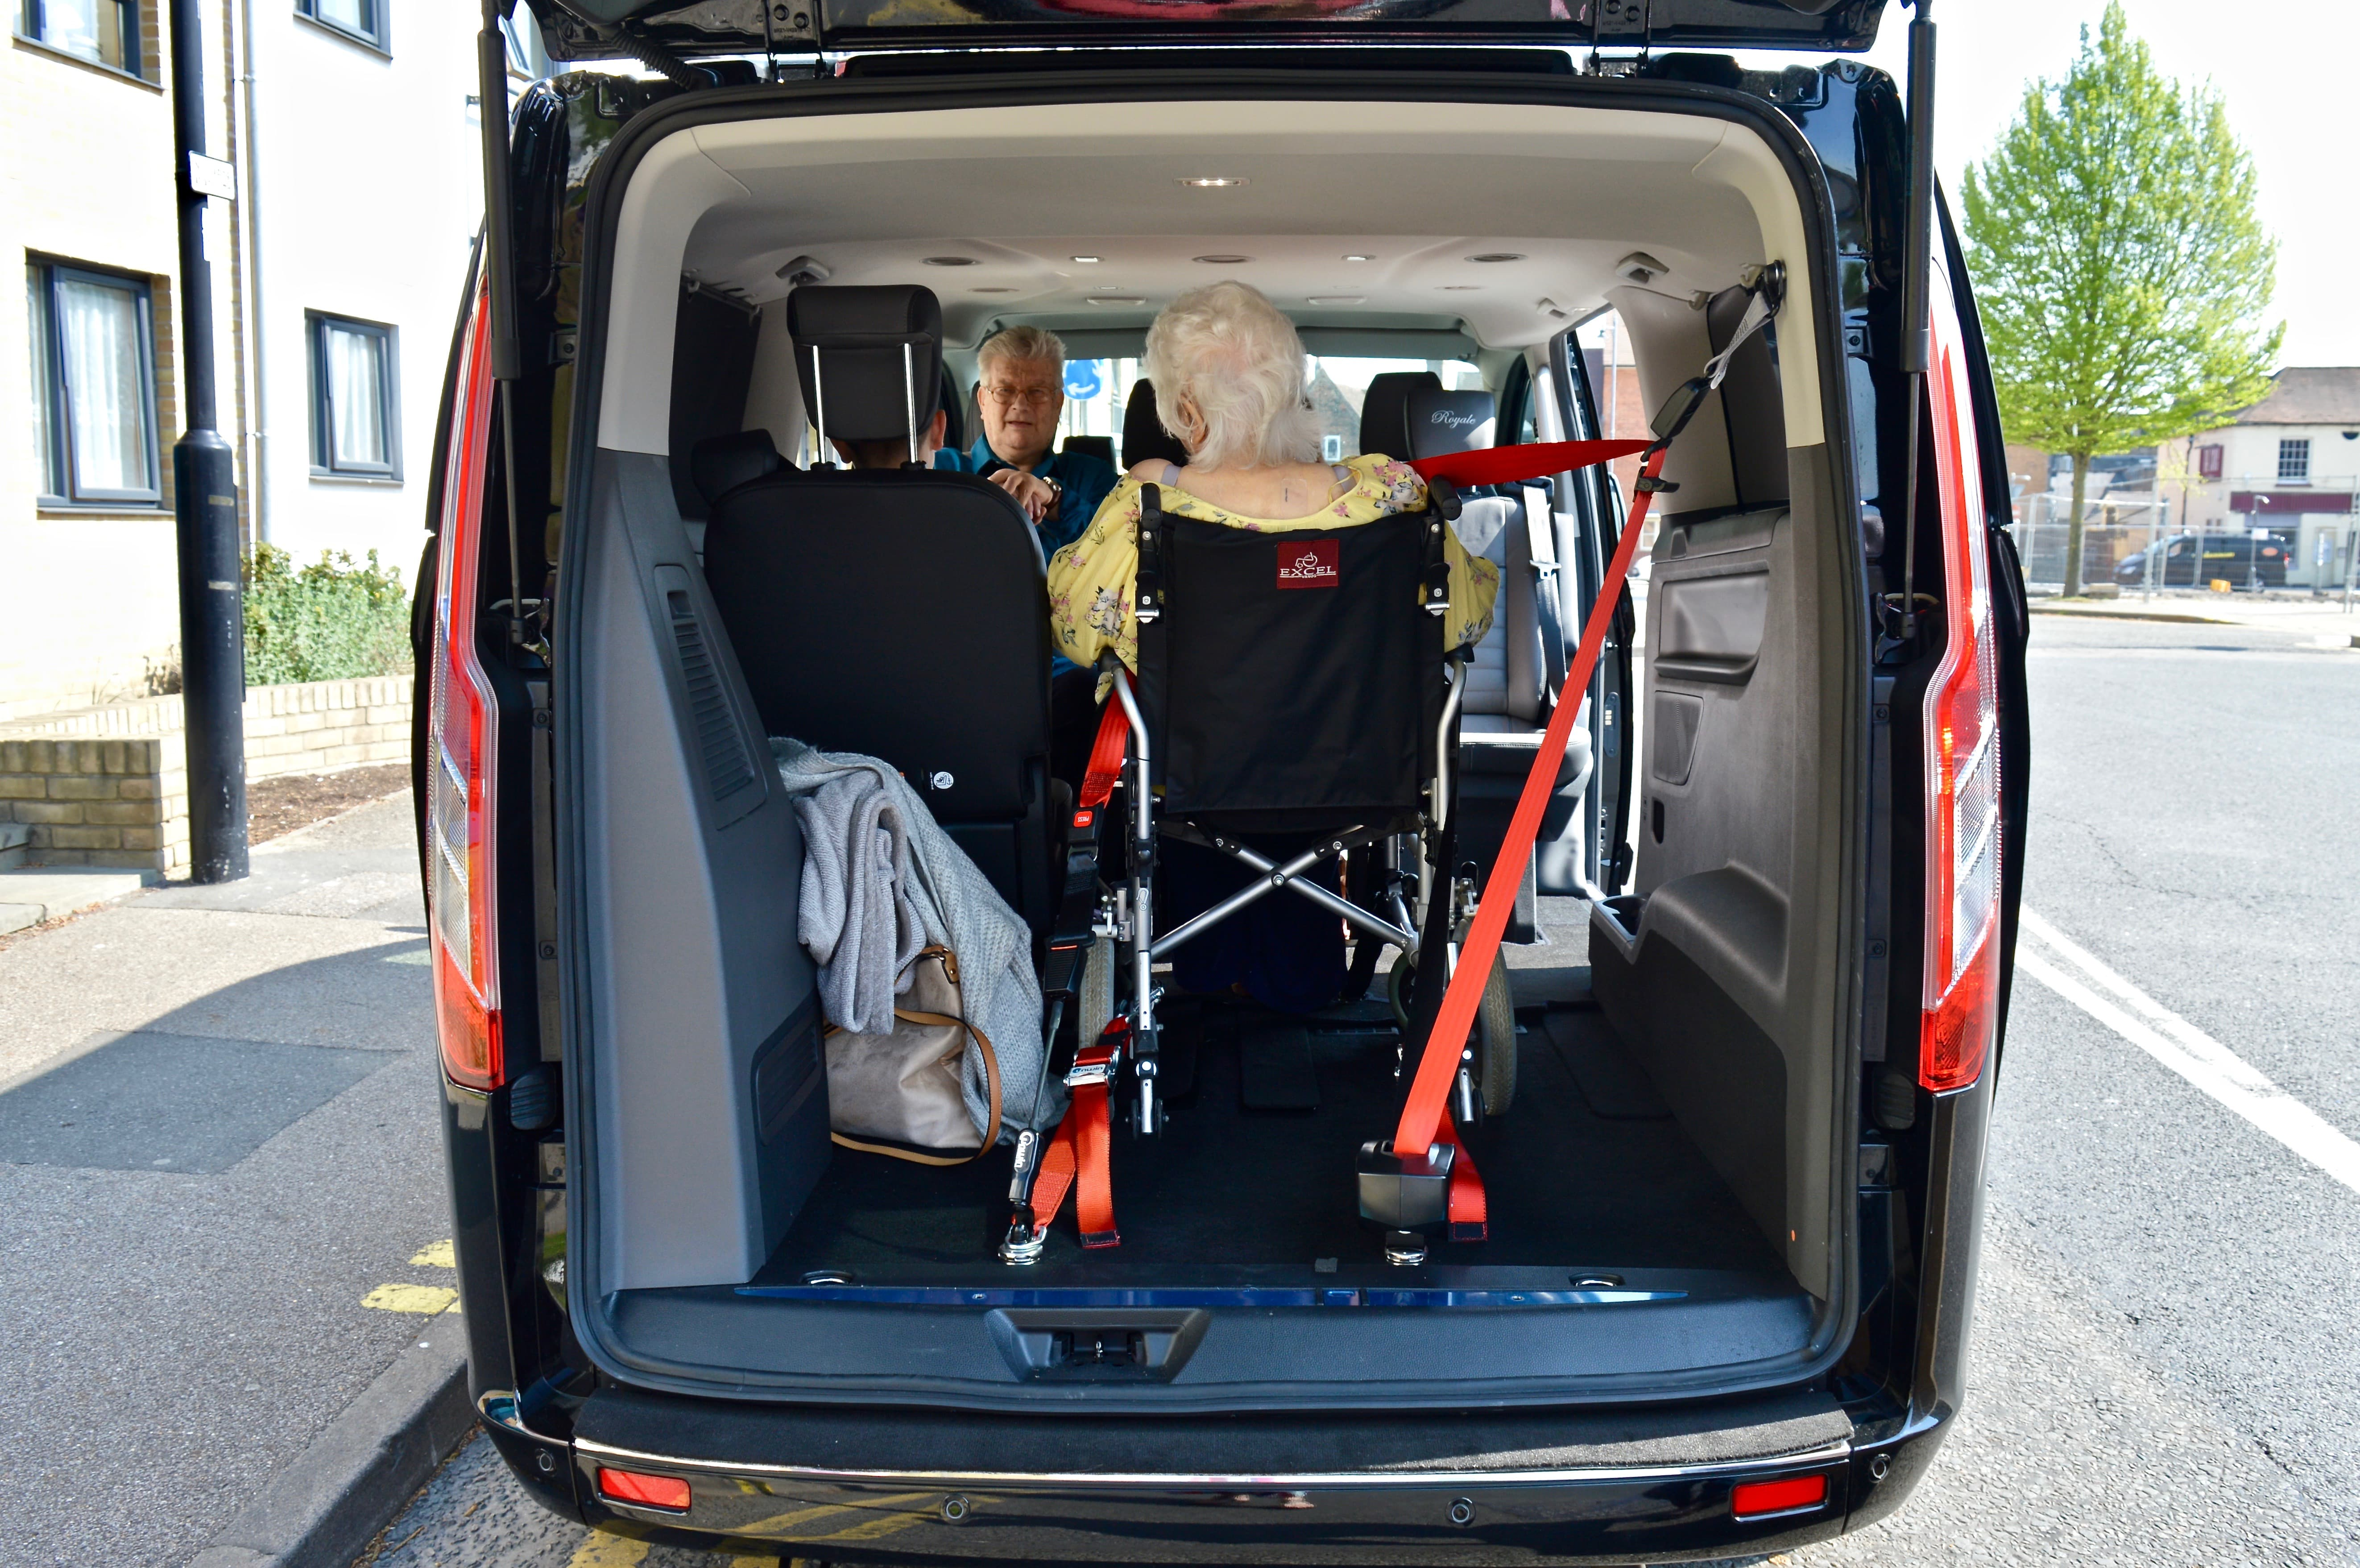 Rear end of vehicle showing wheelchair user secured into taxi